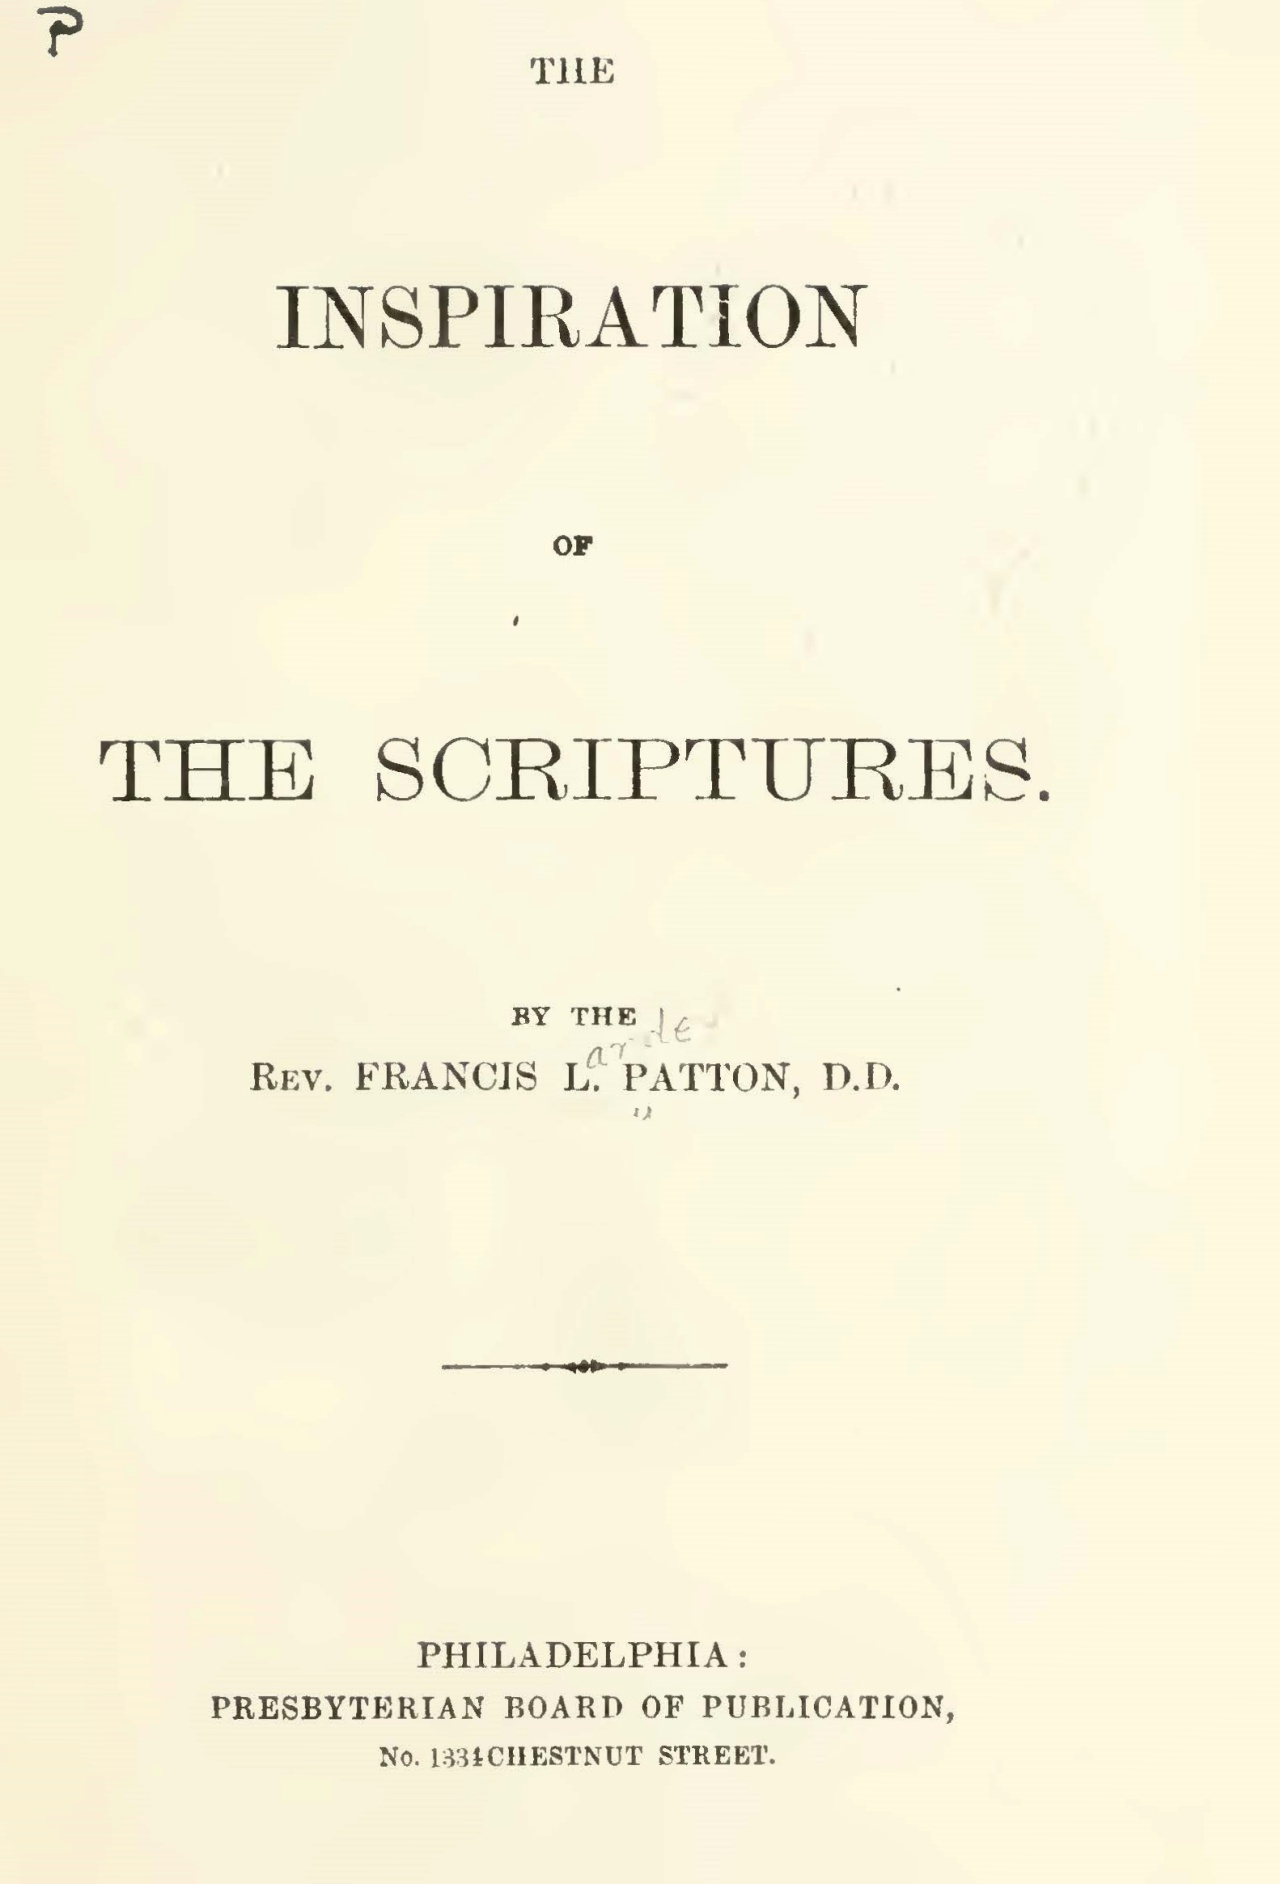 Patton, Francis Landey, The Inspiration of the Scriptures Title Page.jpg